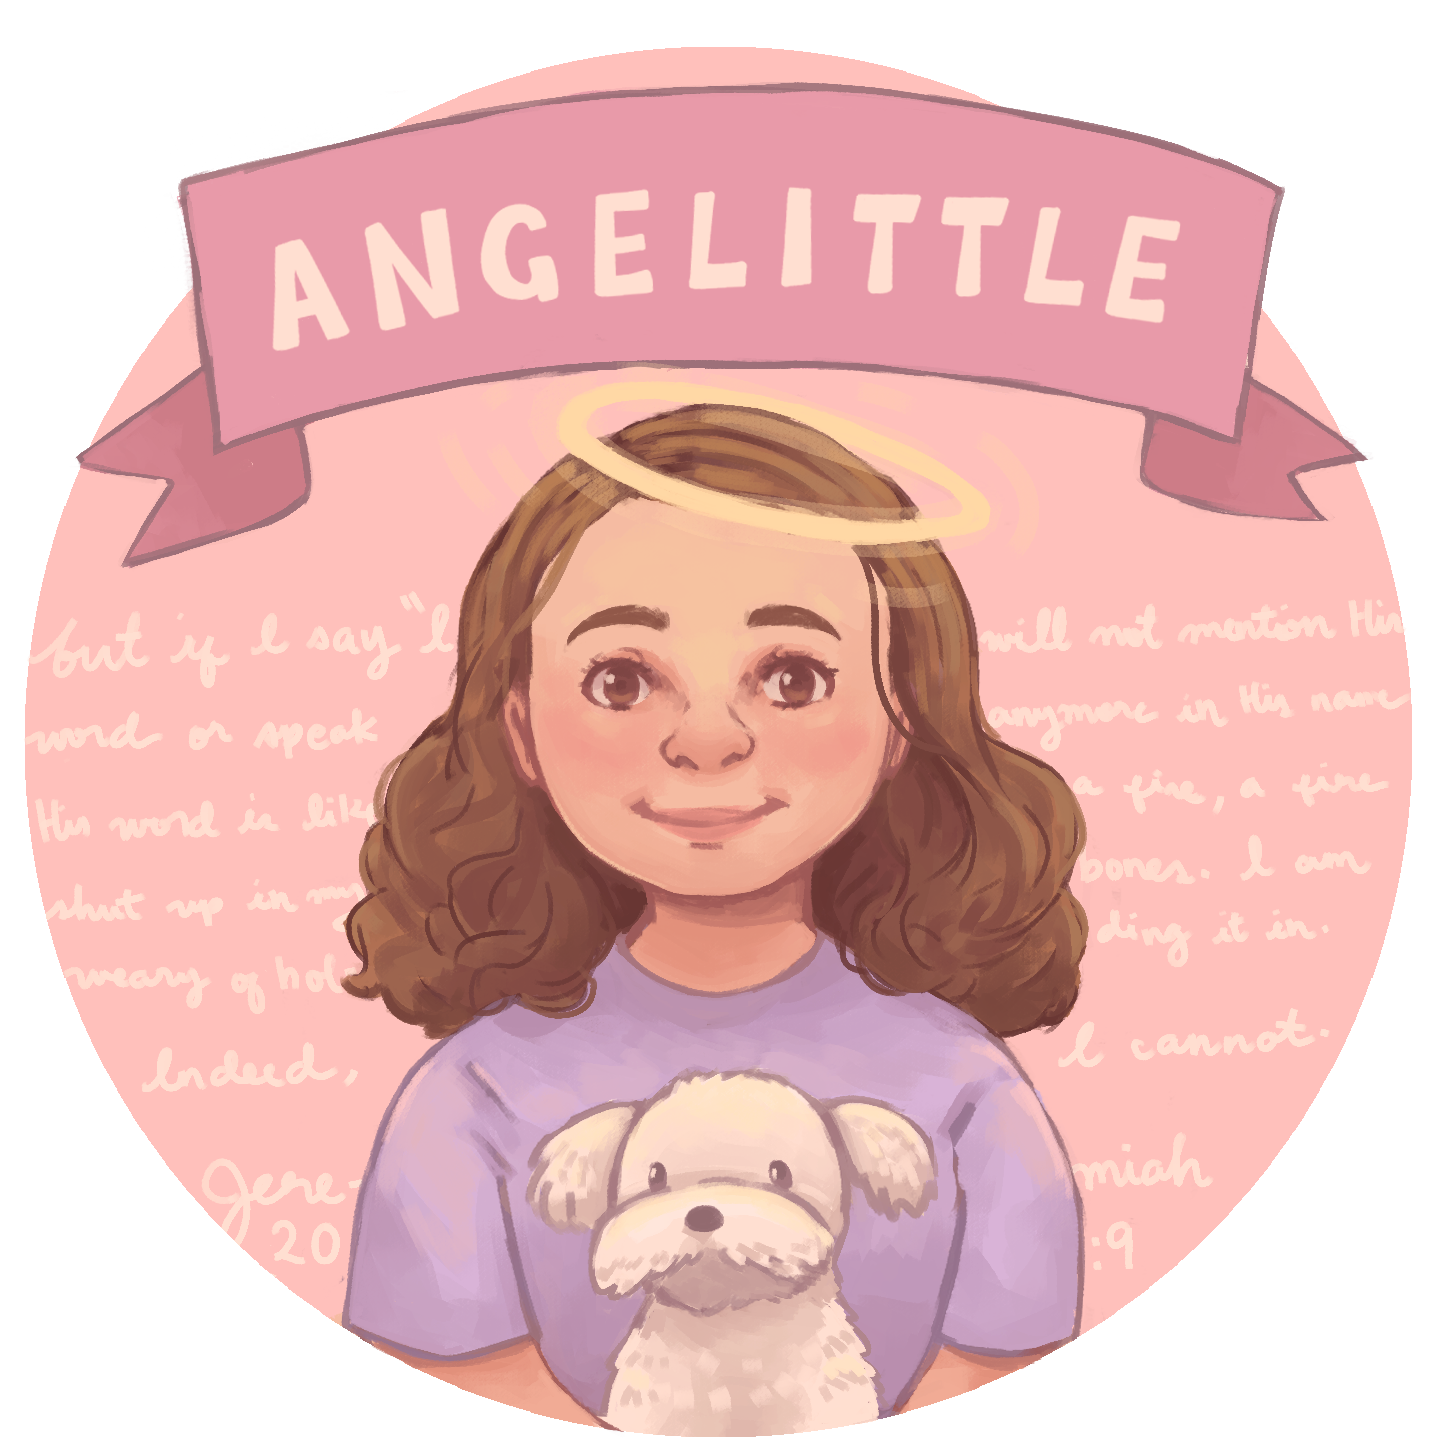 Angelittle